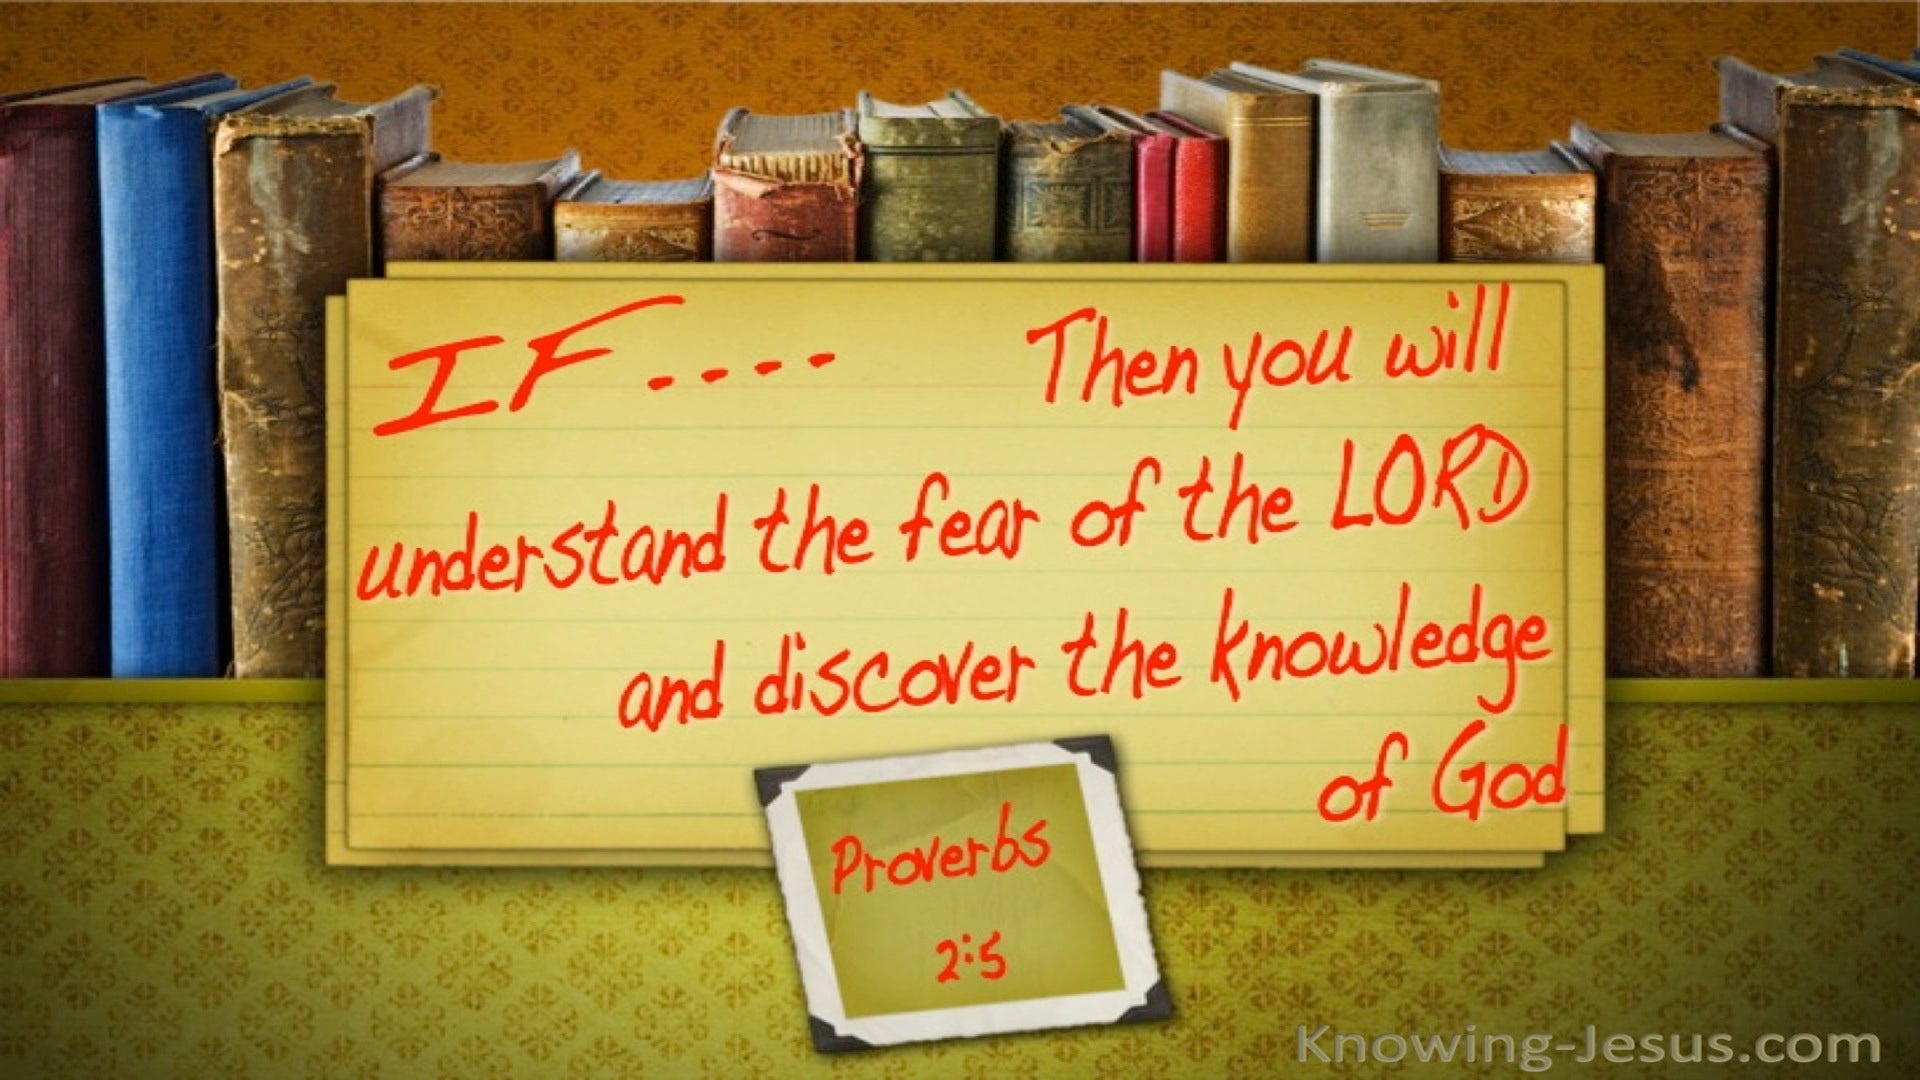 Proverbs 2:5 Understand The Fear Of The Lord (brown)